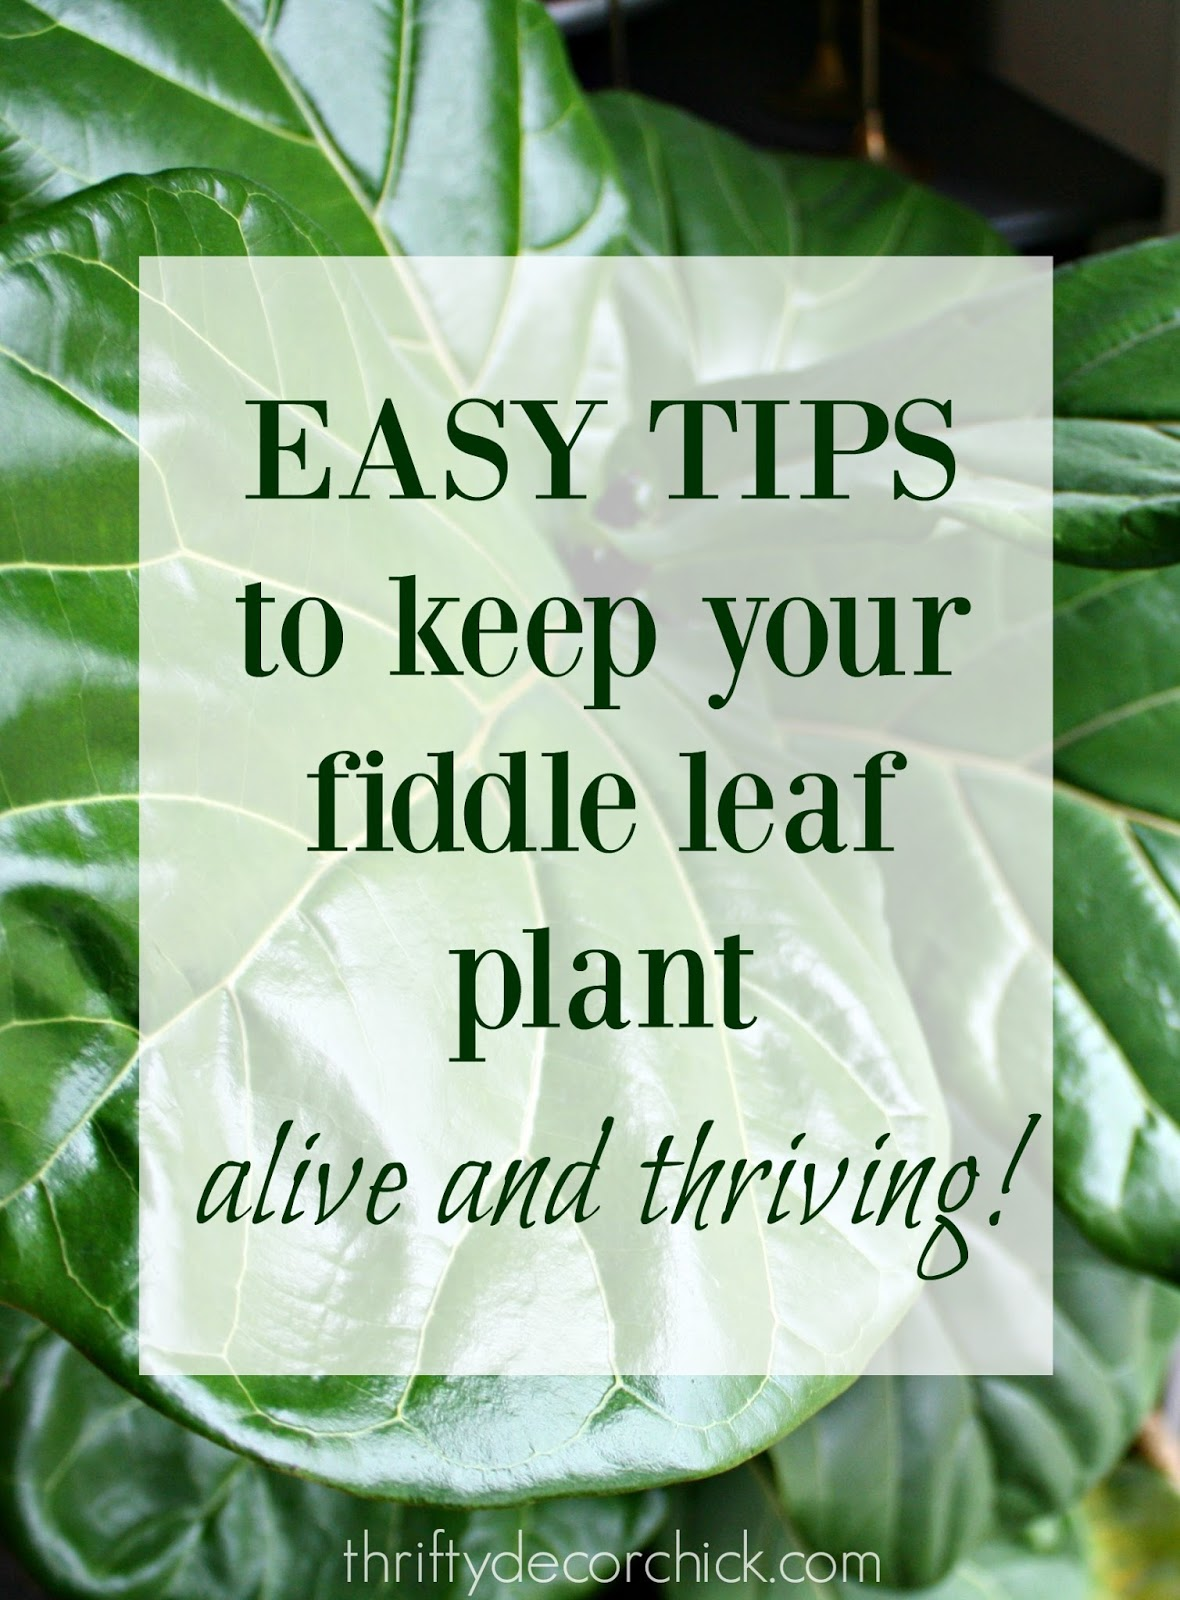 Helpful tips for growing healthy fiddle leaf trees